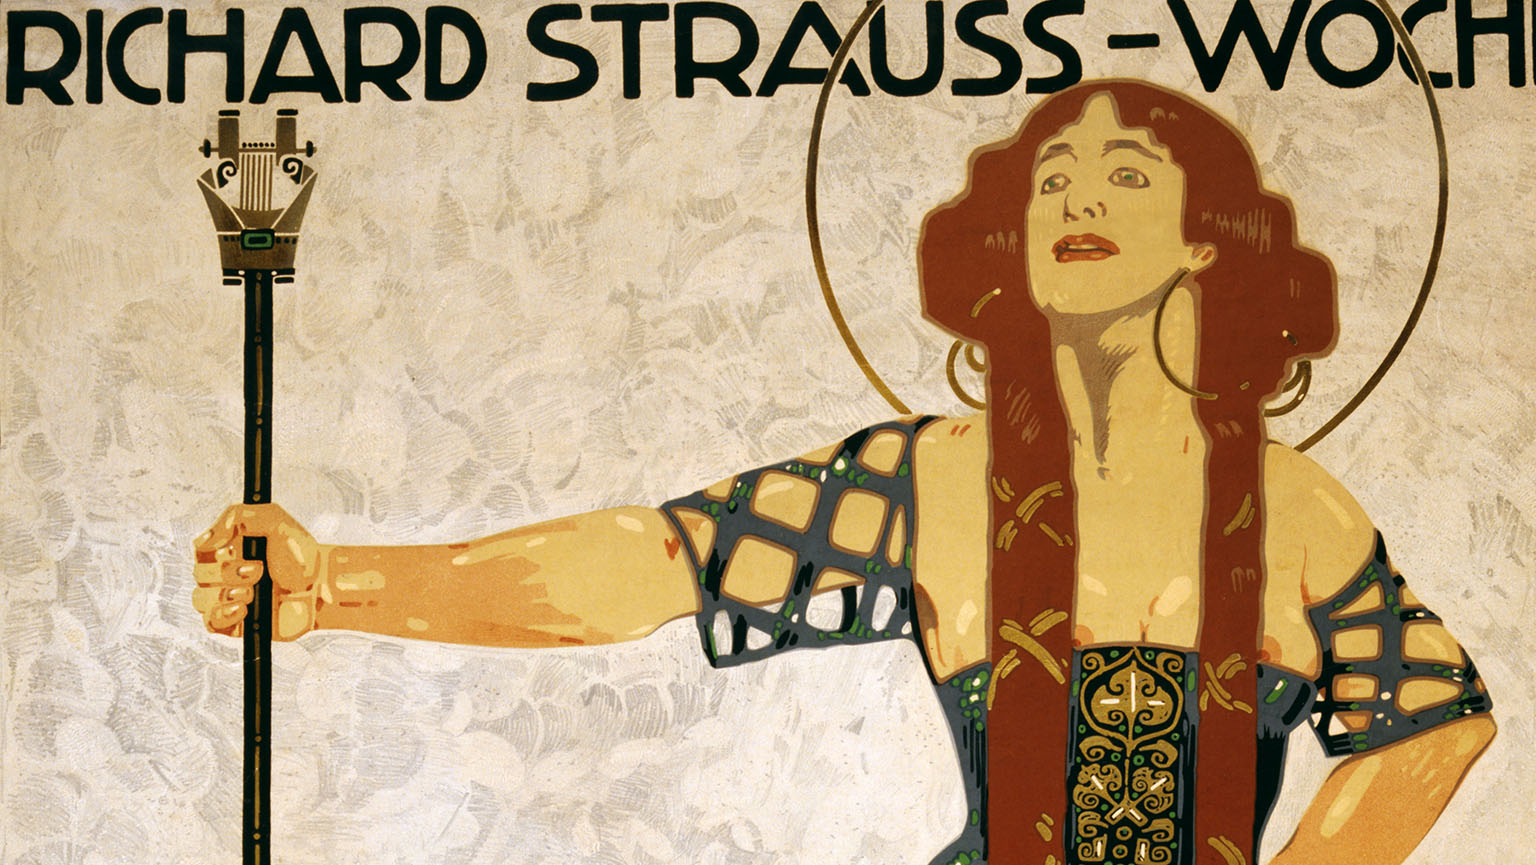 Late Romantic German Opera—Richard Strauss and Salome